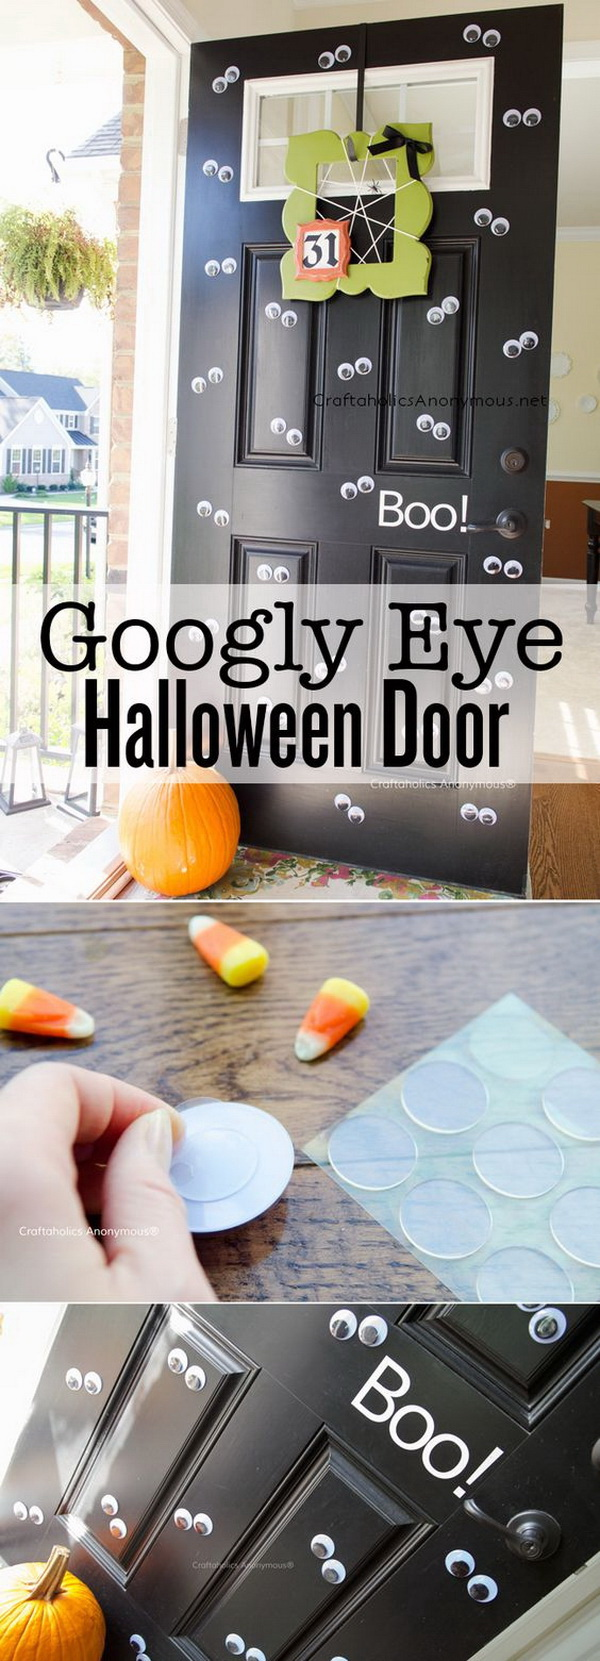 Googly Eye Halloween Door Decoration. Greet your guests and neighbors with the large googly eyes decorated door this Halloween season.